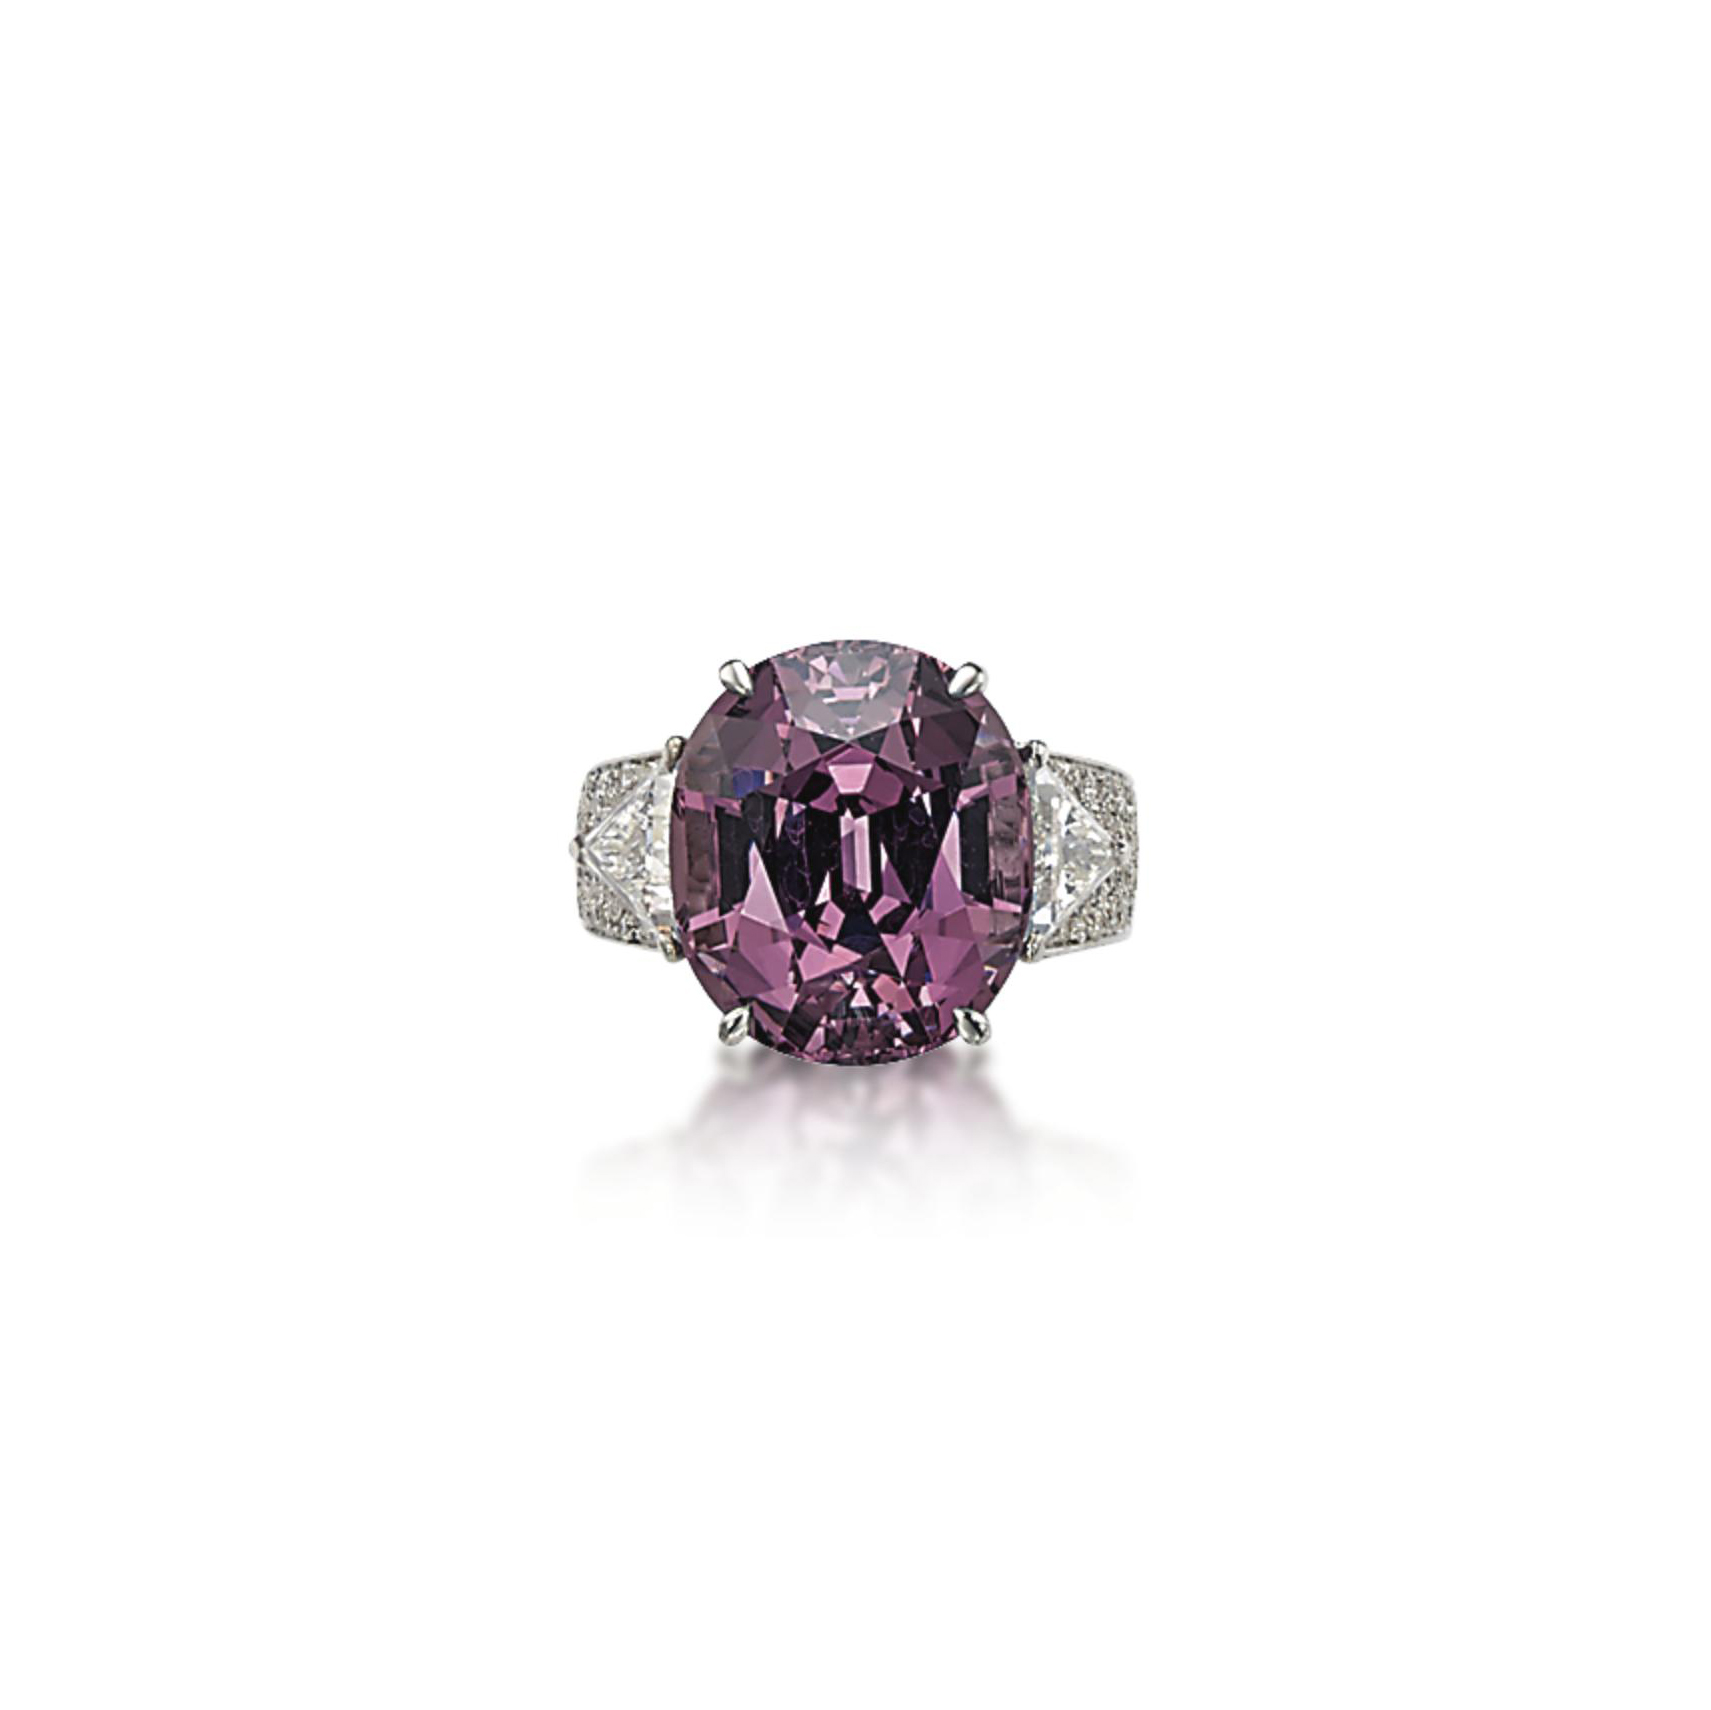 A SPINEL AND DIAMOND RING, BY SABBADINI